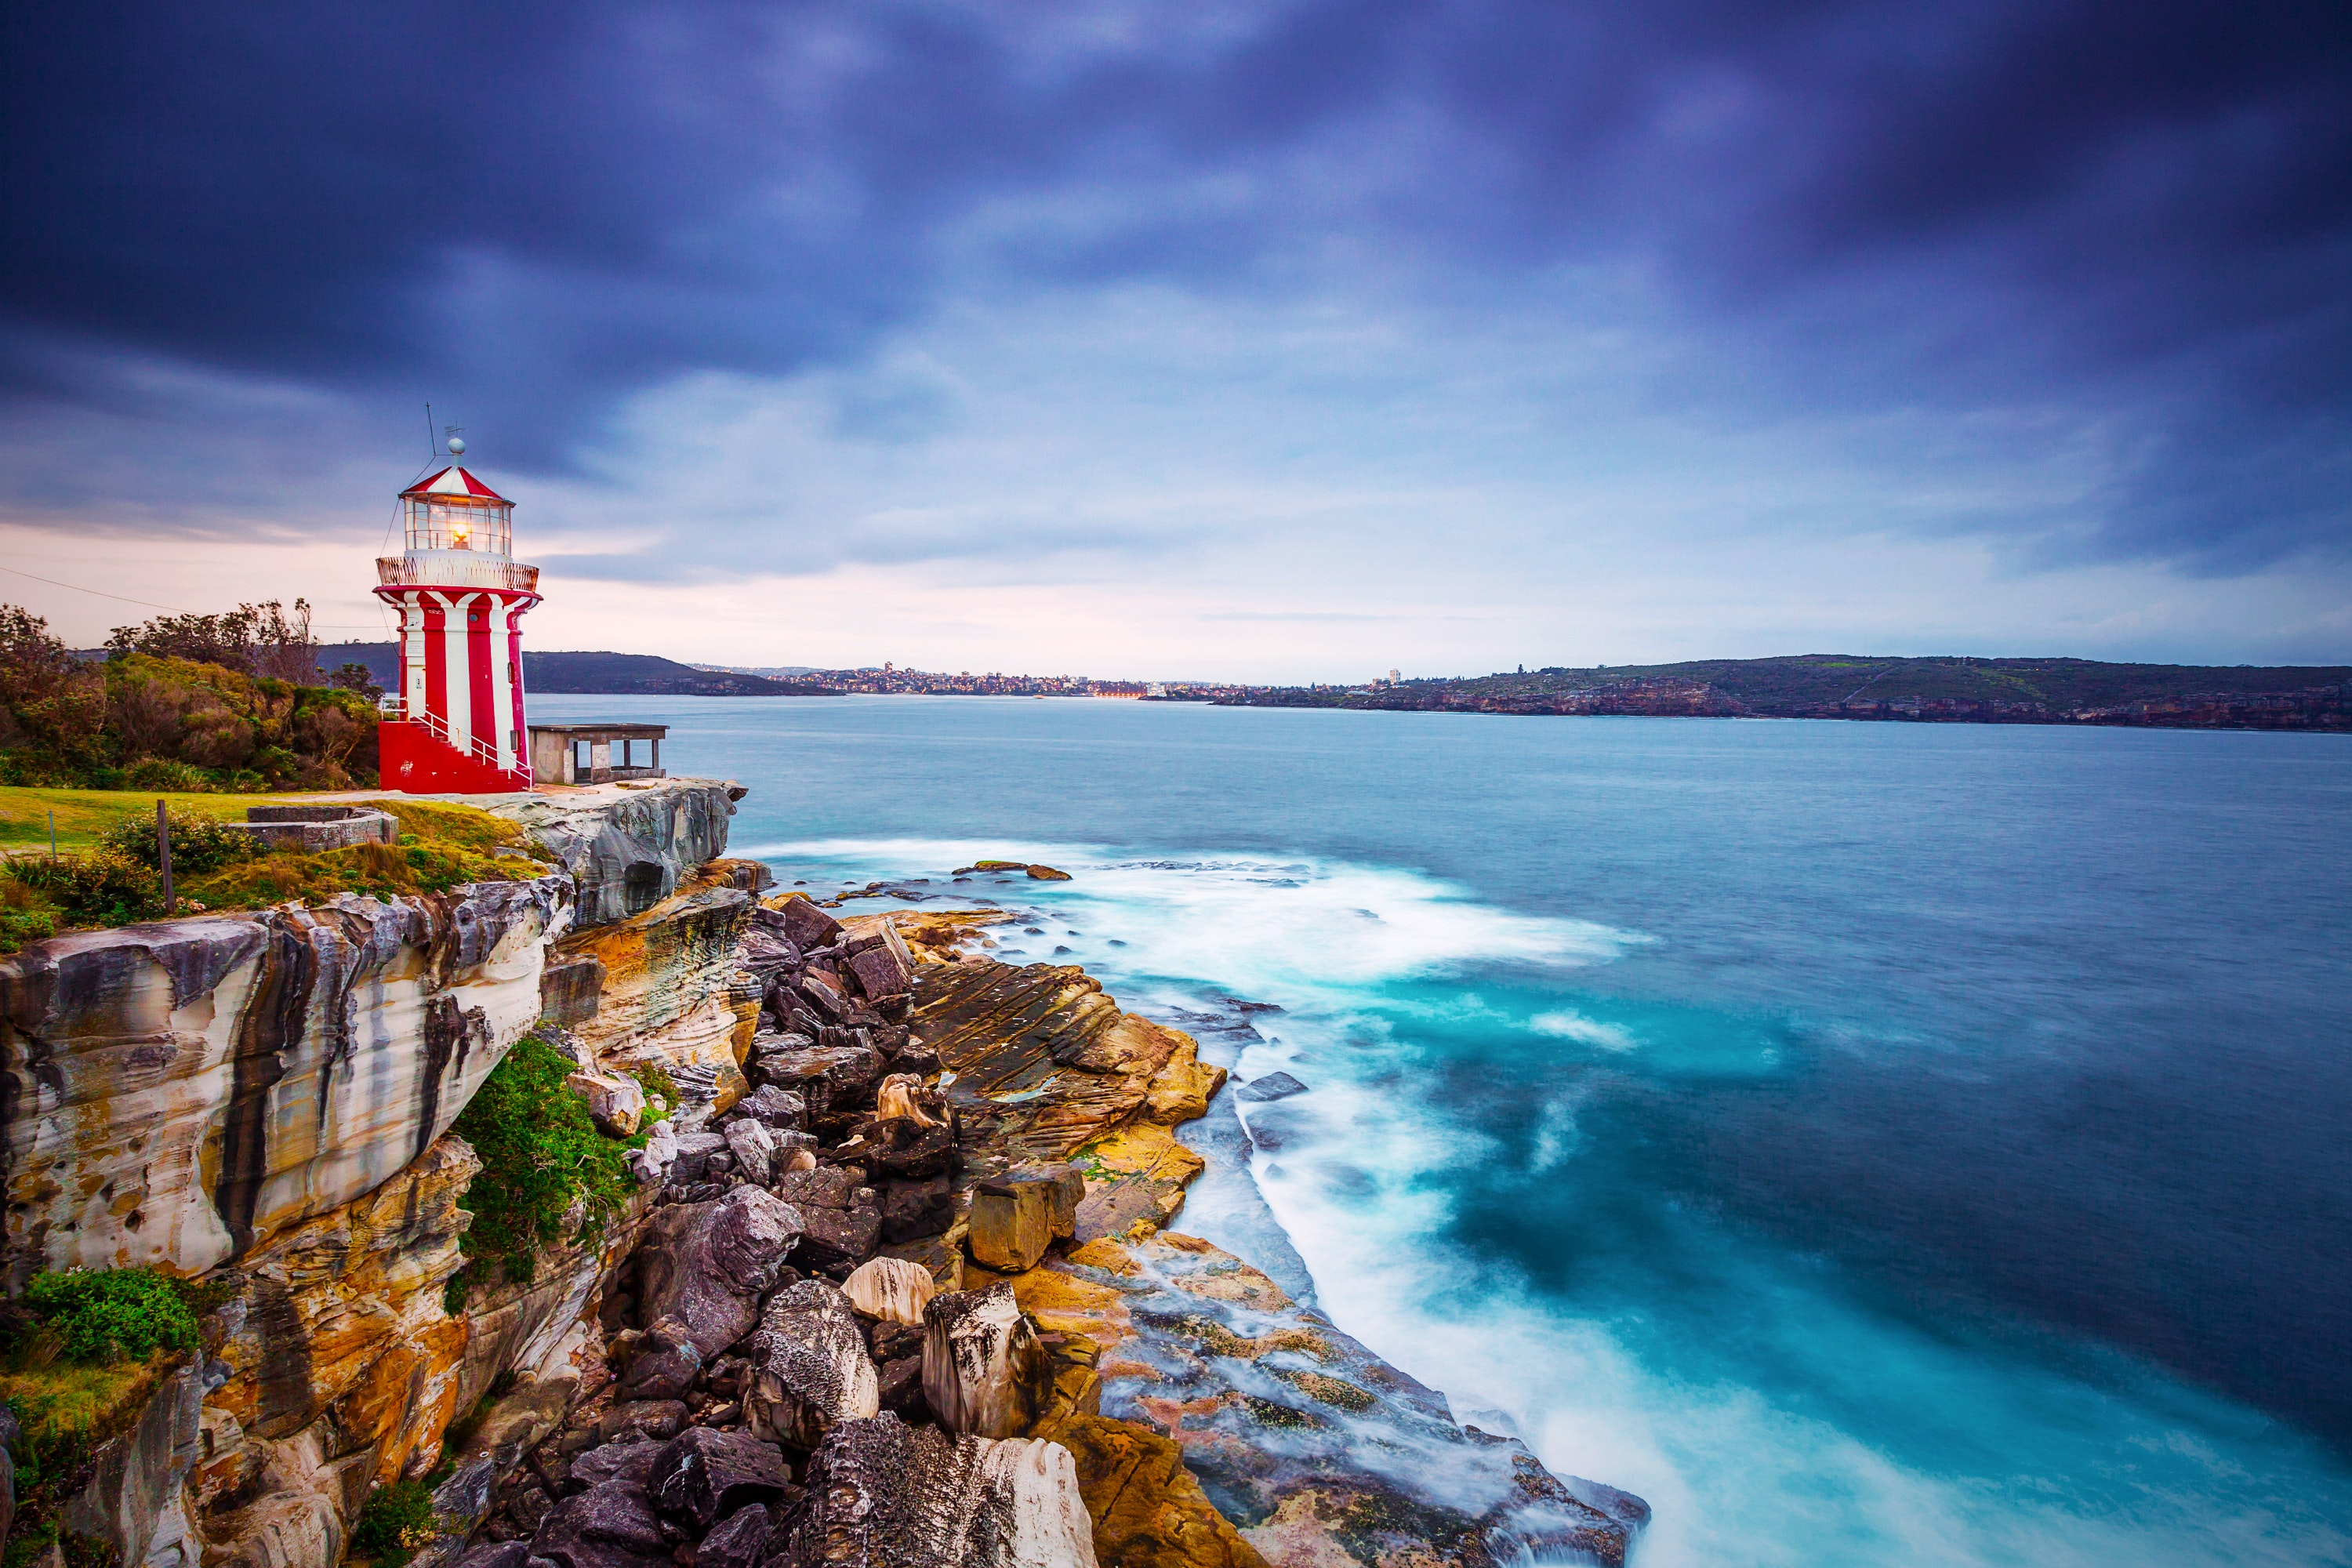 How to Make the Most of 5 Days in Sydney